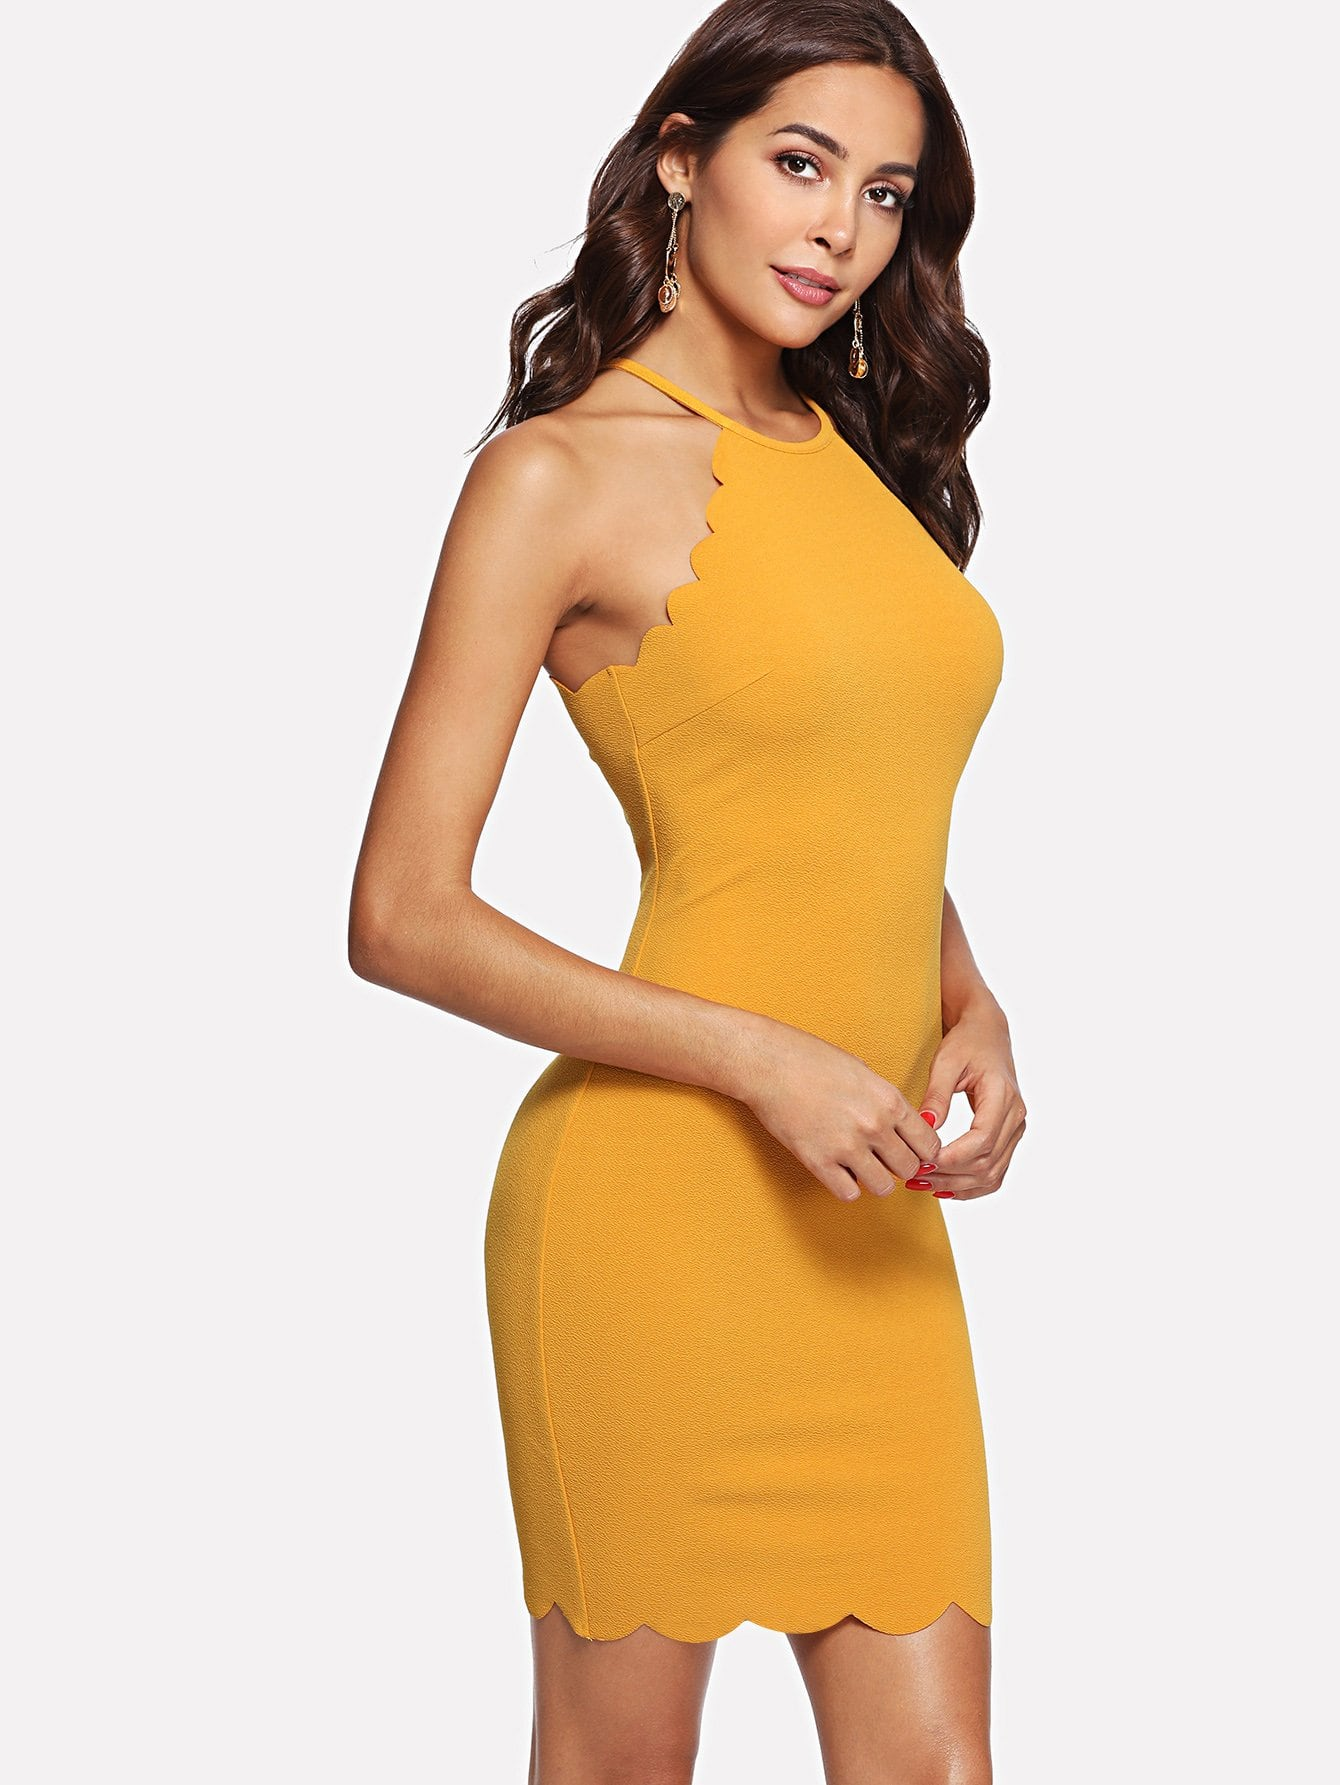 Scallop Edge Halter Dress scallop edge halter top